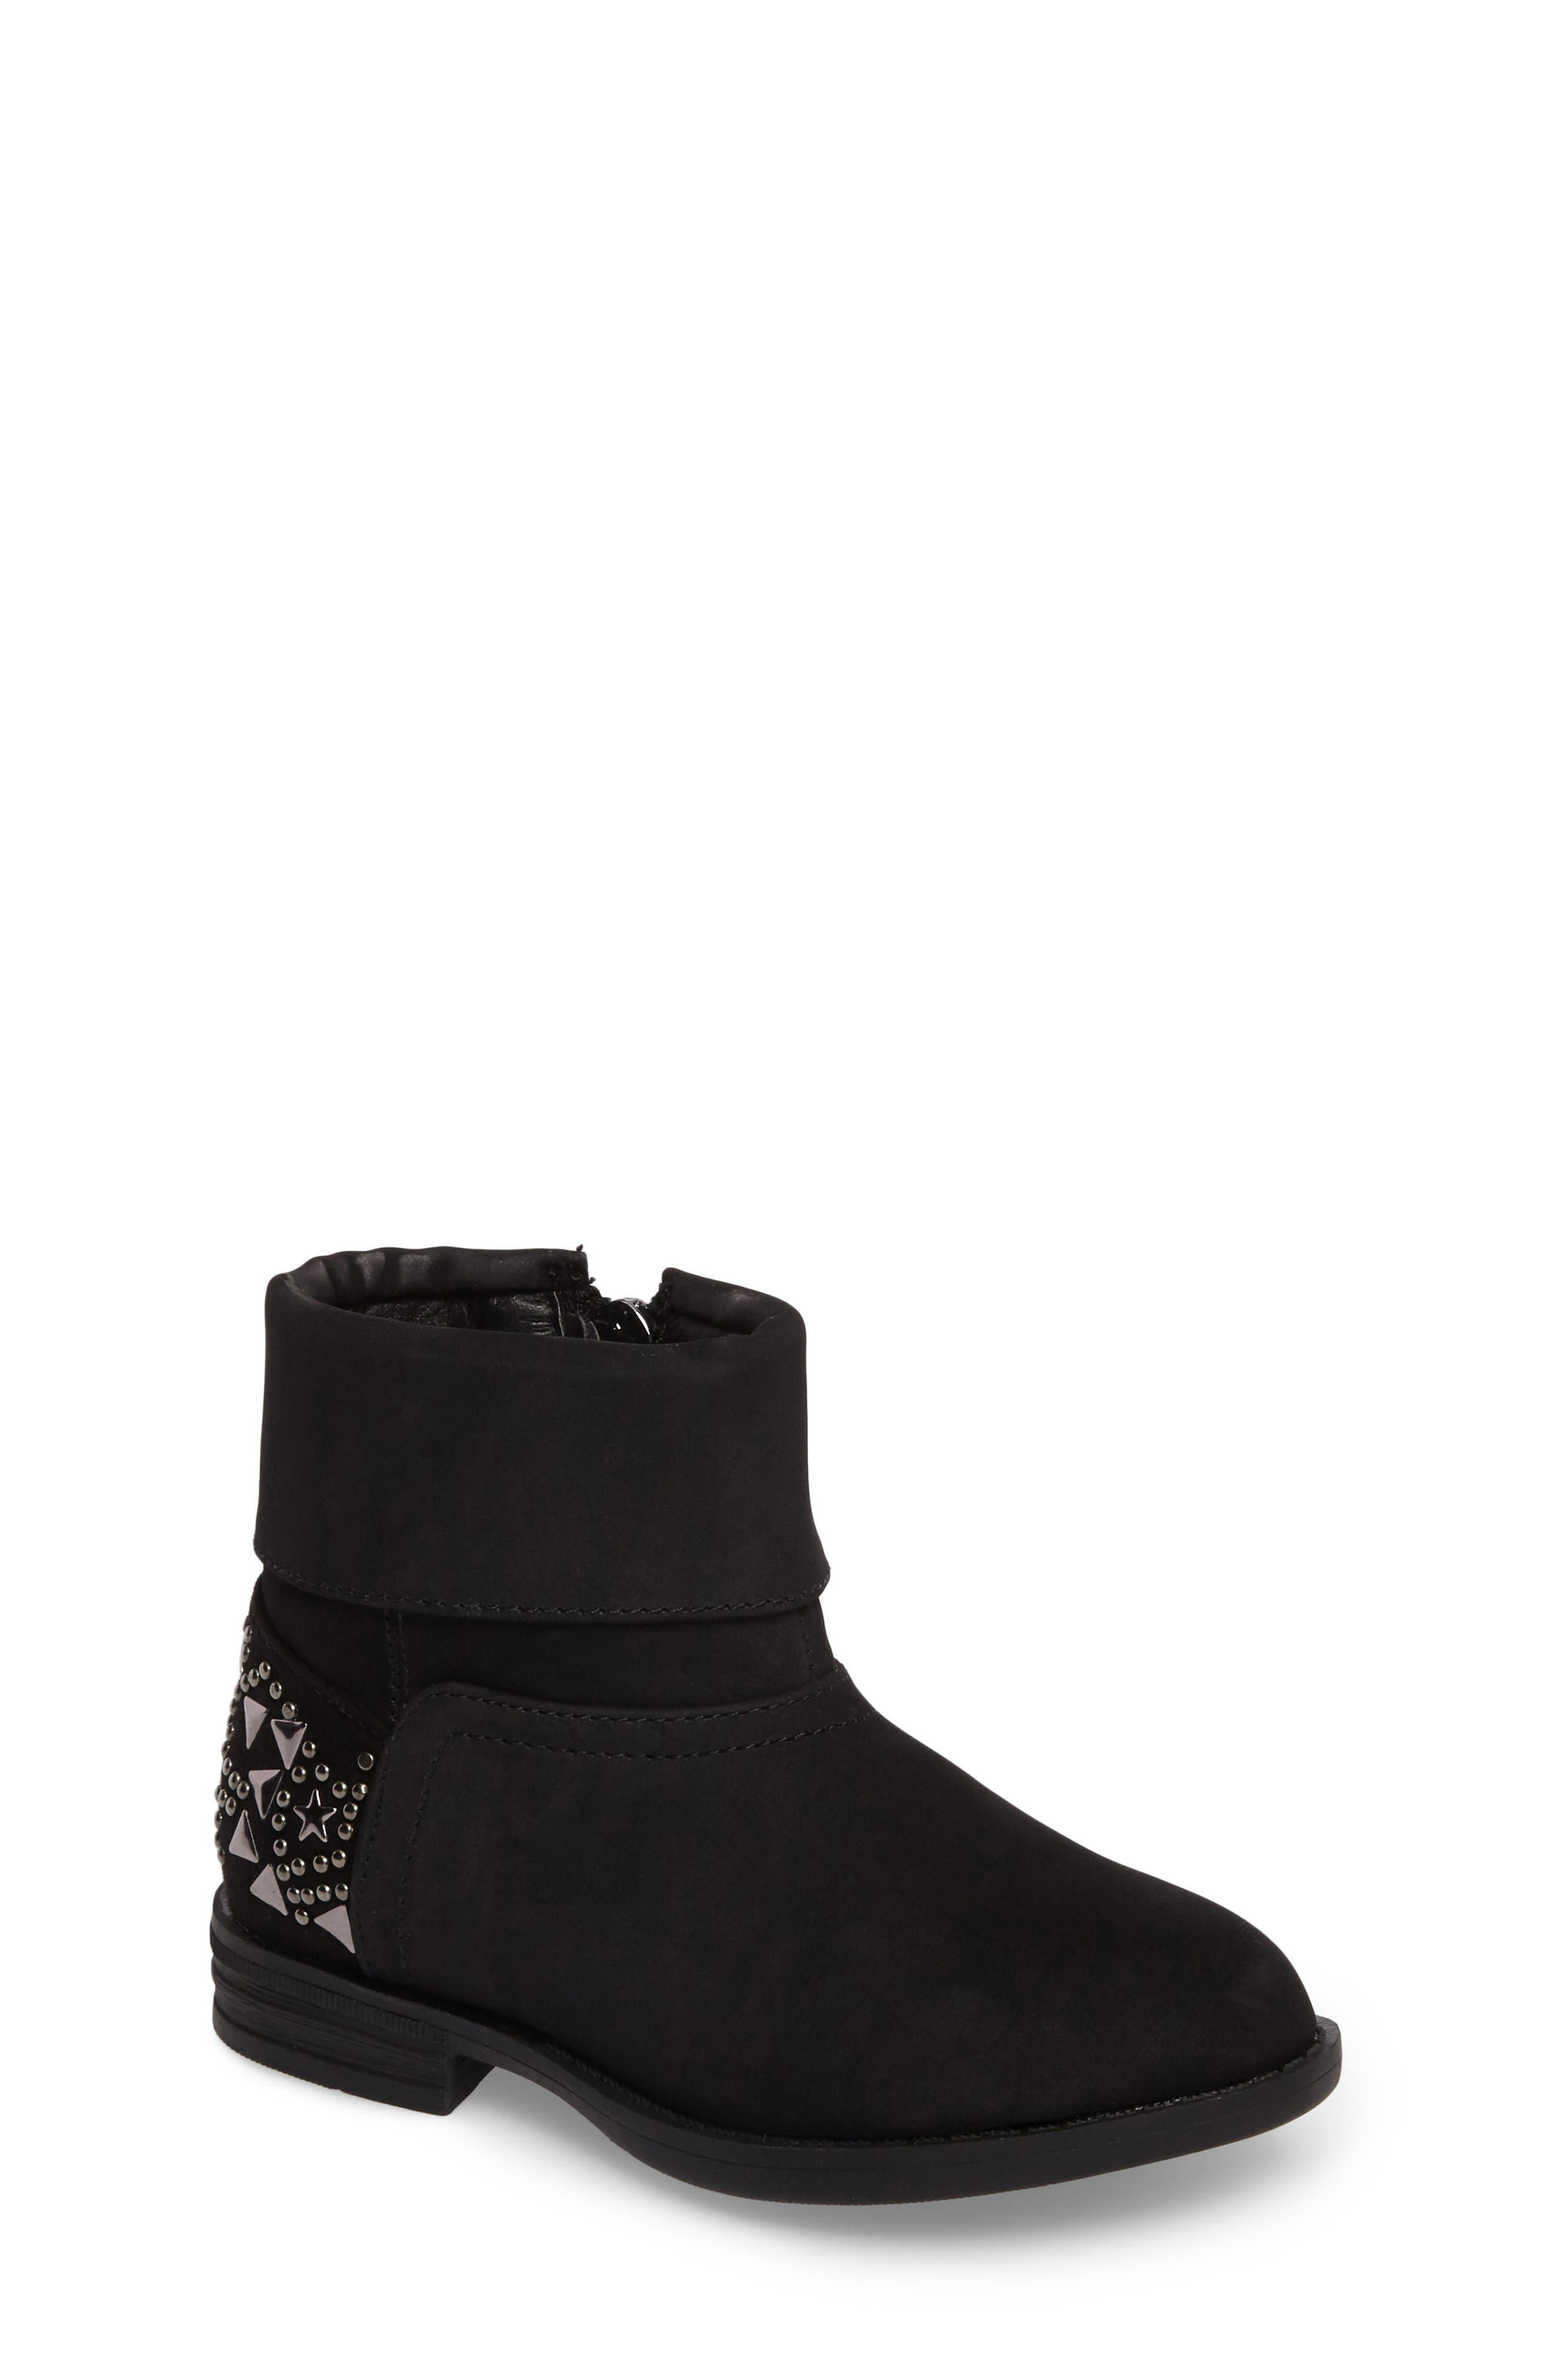 Wild Star Studded Bootie,                         Main,                         color, Black